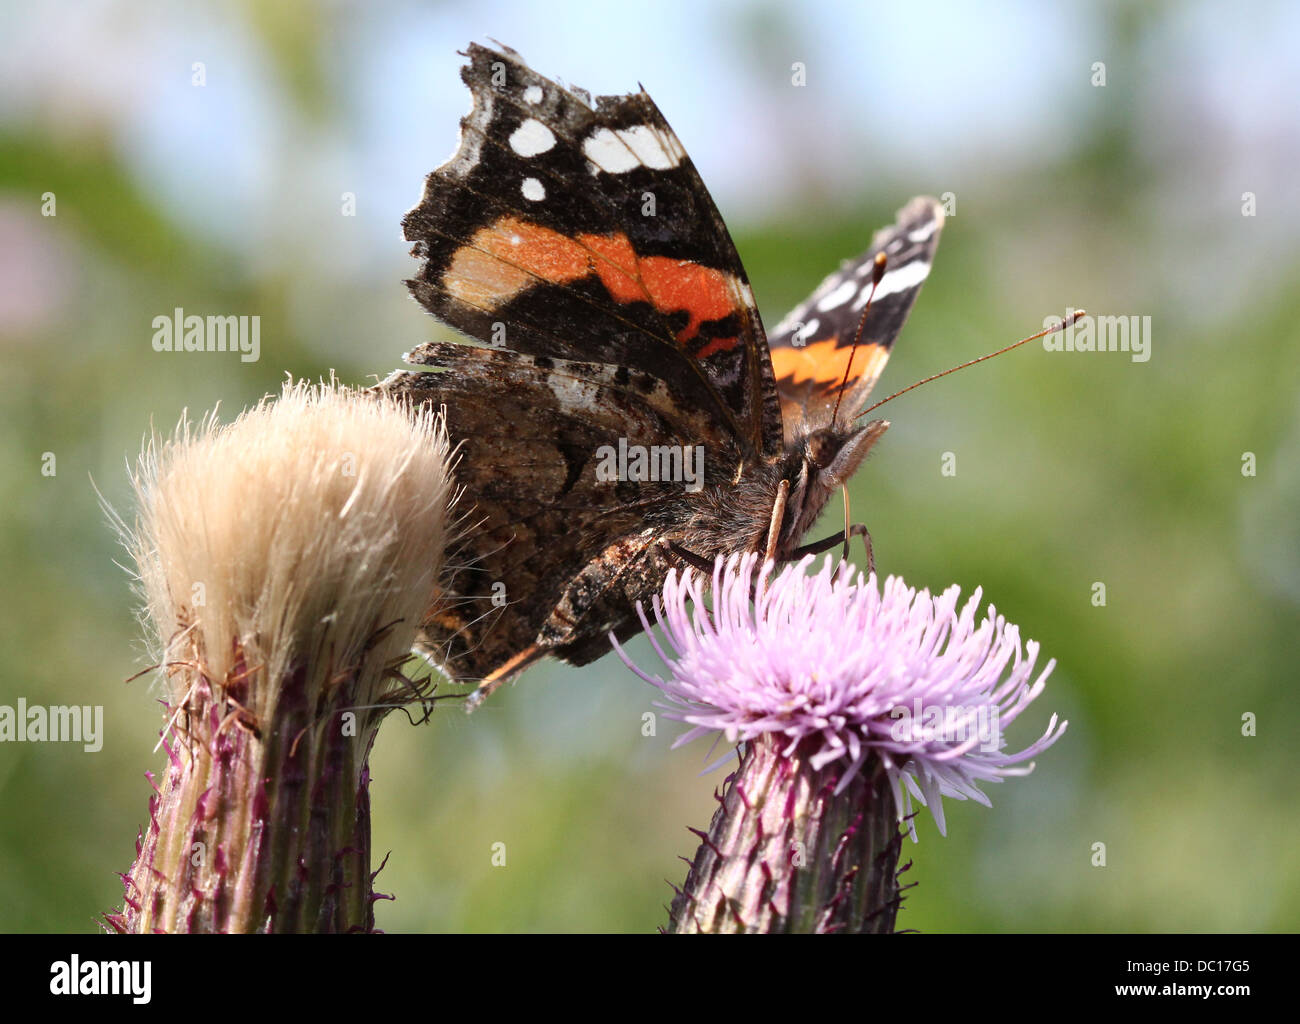 Red admiral butterfly (vanessa atalanta) feeding on a thistle flower - Stock Image